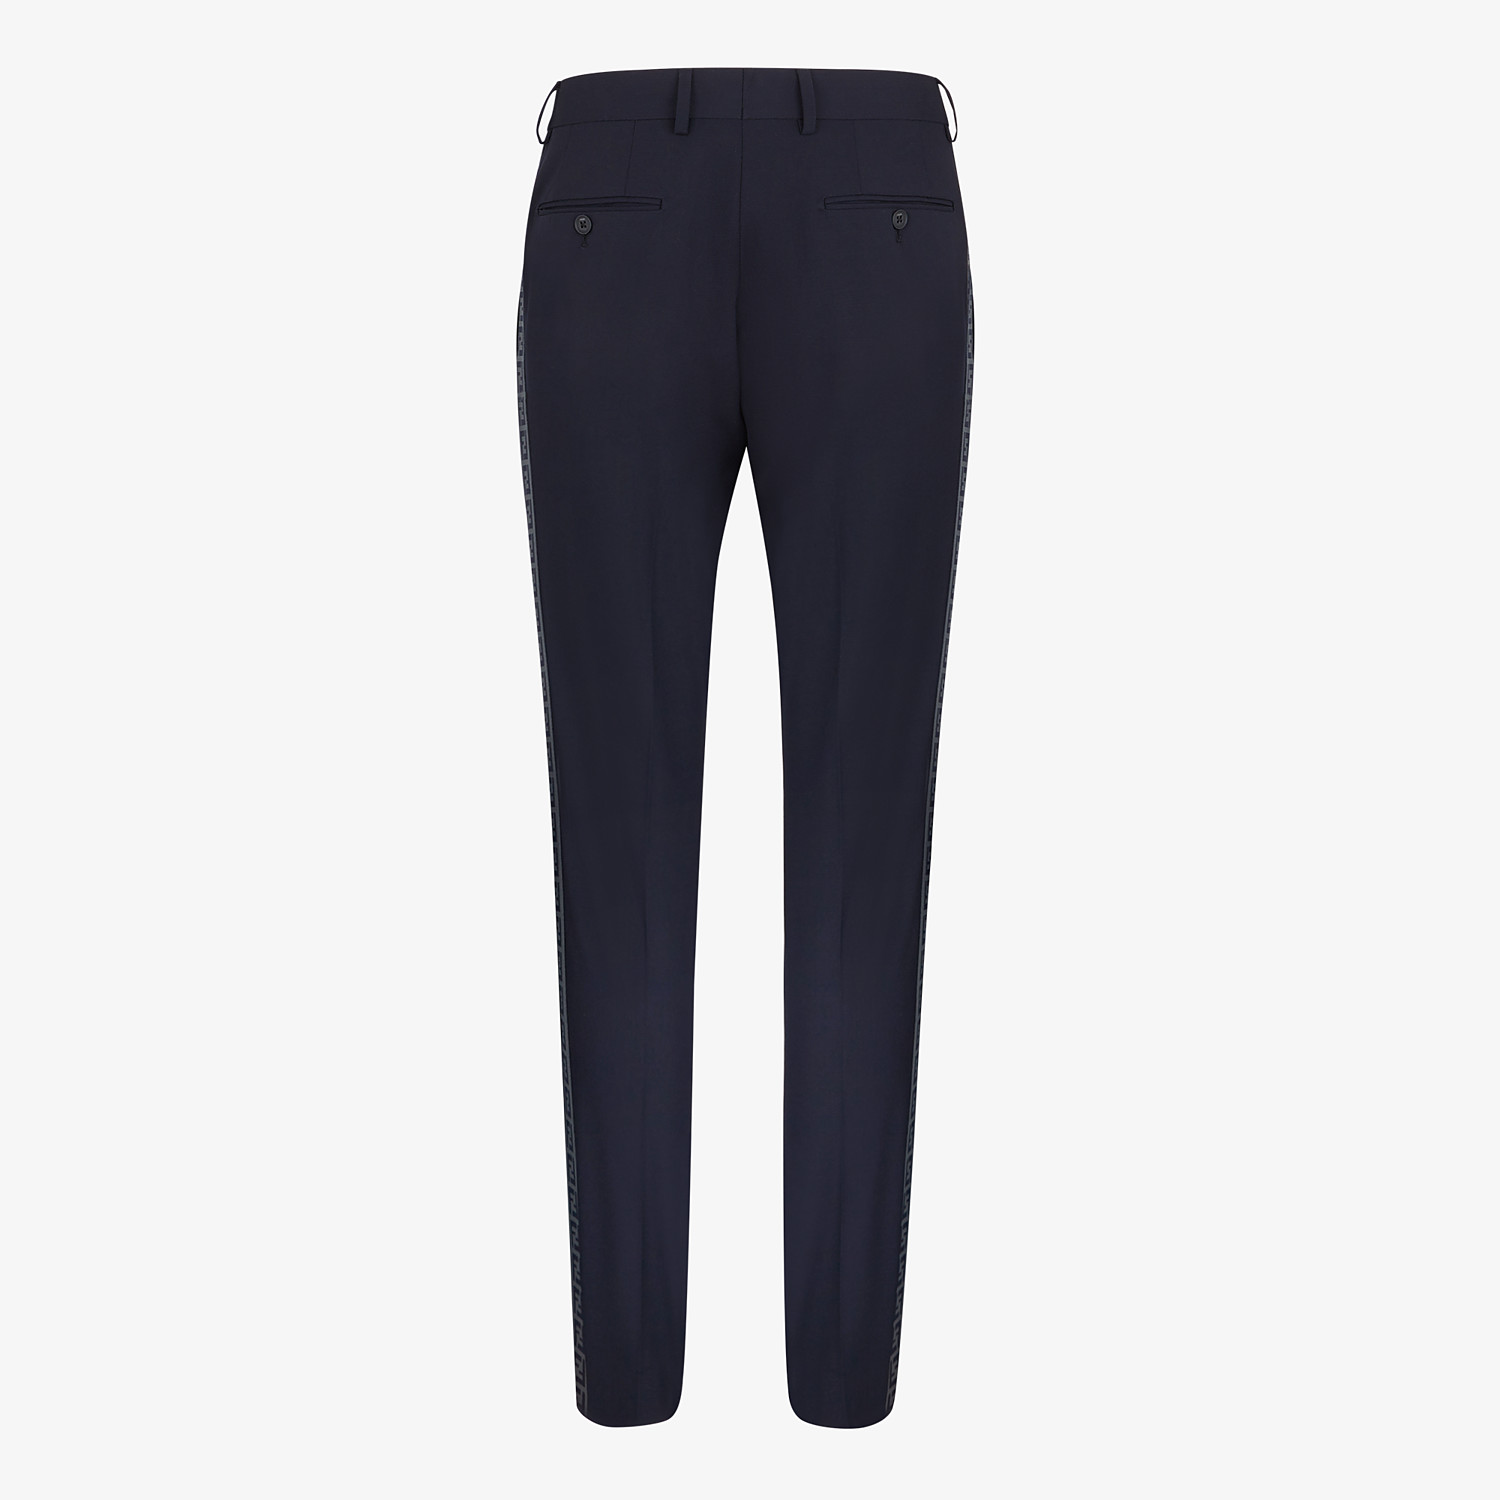 FENDI PANTS - Blue wool pants - view 2 detail